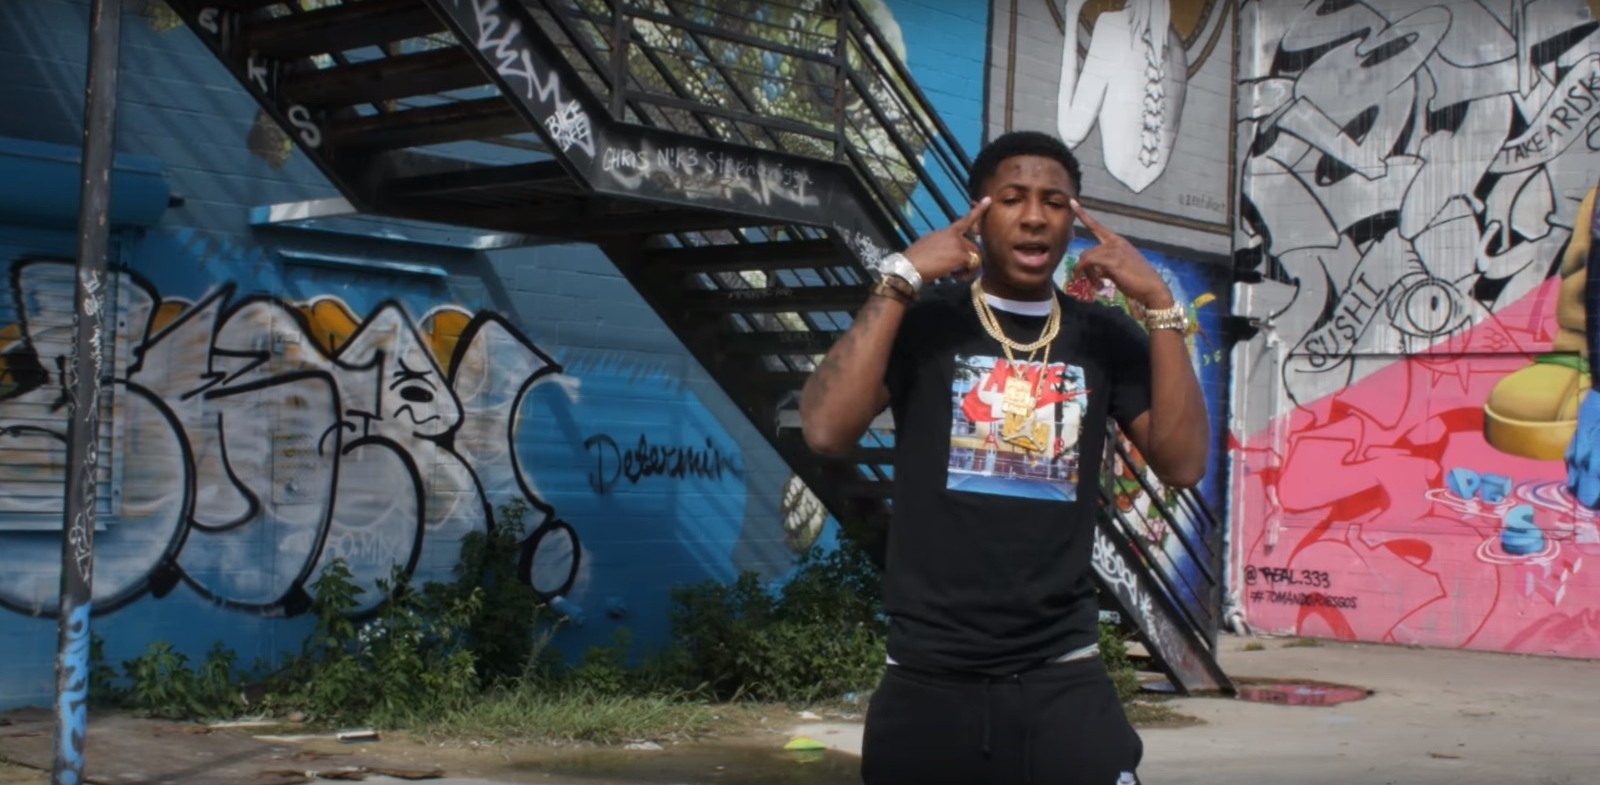 Nike T-Shirt And Sweatpants - YoungBoy Never Broke Again - Graffiti (2017) Official Music Video Product Placement